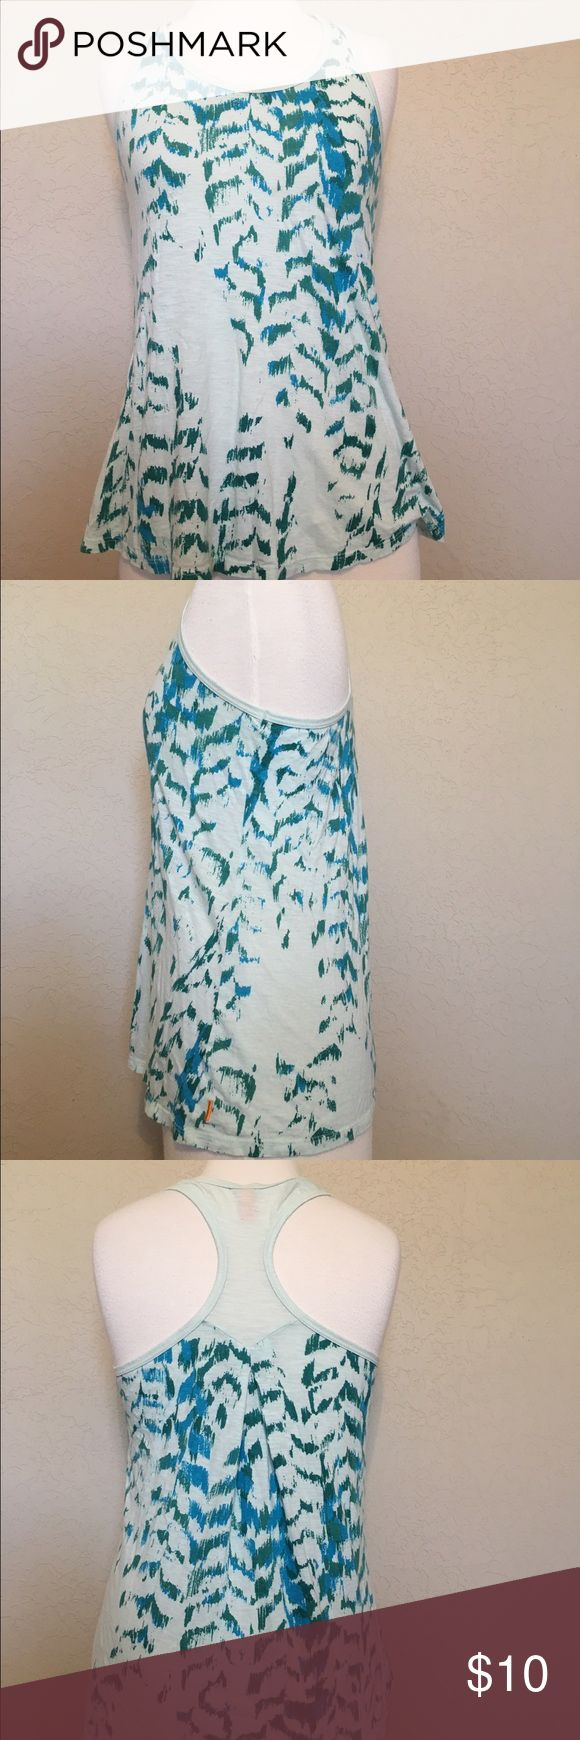 Lucy Small Teal Green Racer Back Tank Top Very comfy, sheer tank great for casual or athletic wear! Lucy Tops Tank Tops